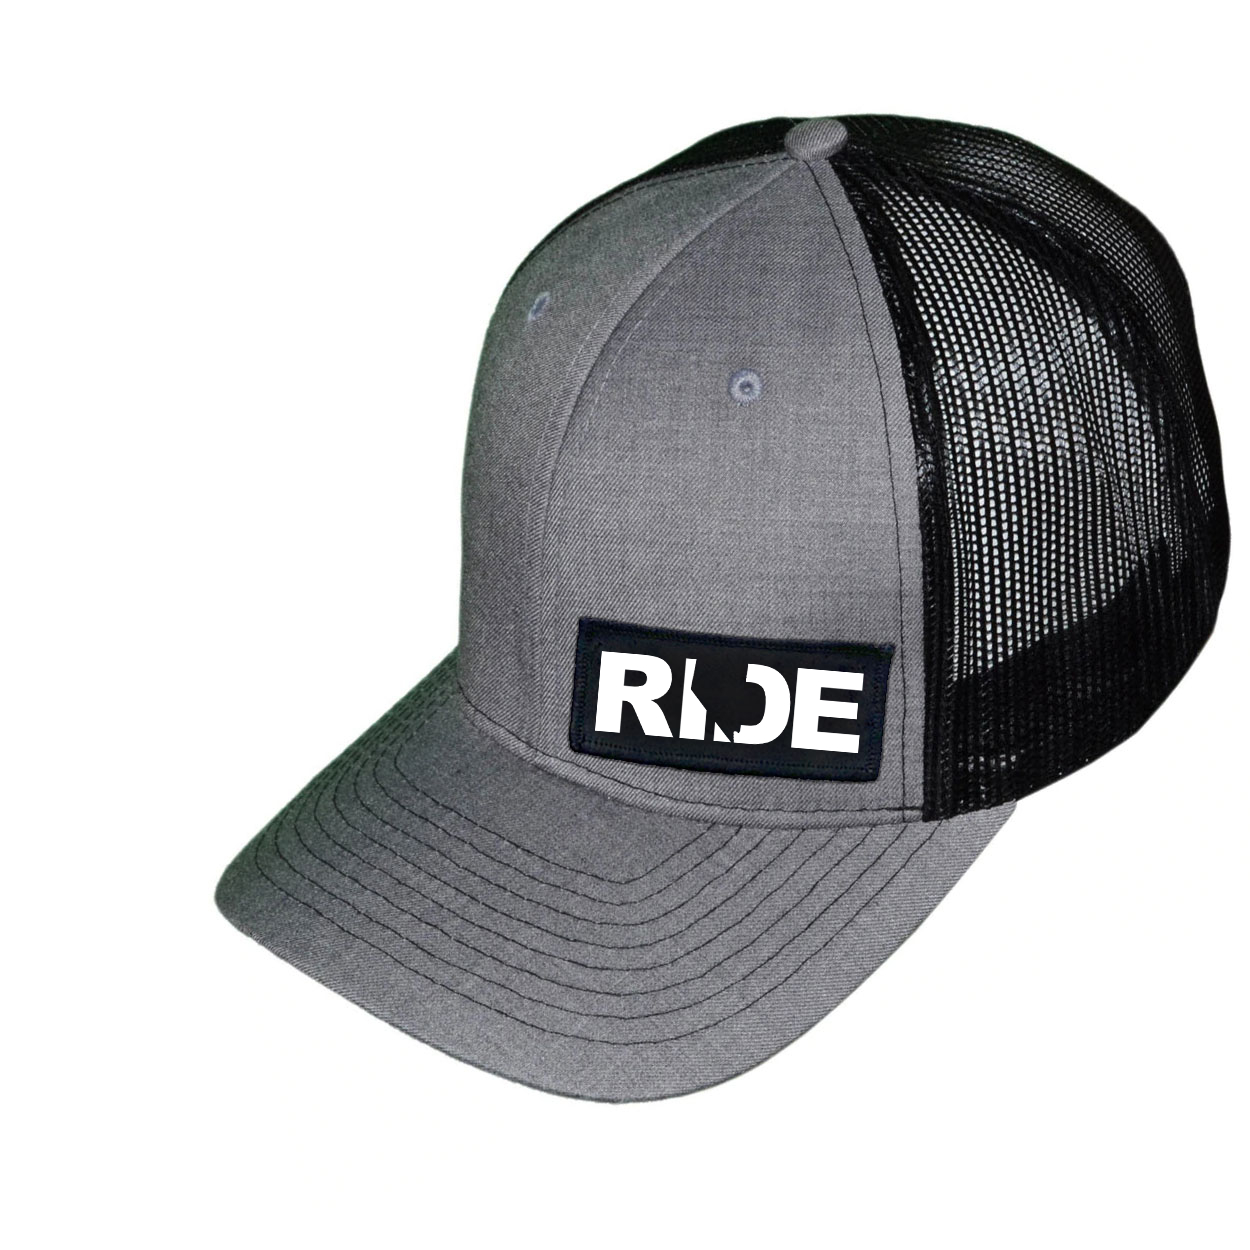 Ride Nevada Night Out Woven Patch Snapback Trucker Hat Heather Gray/Black (White Logo)